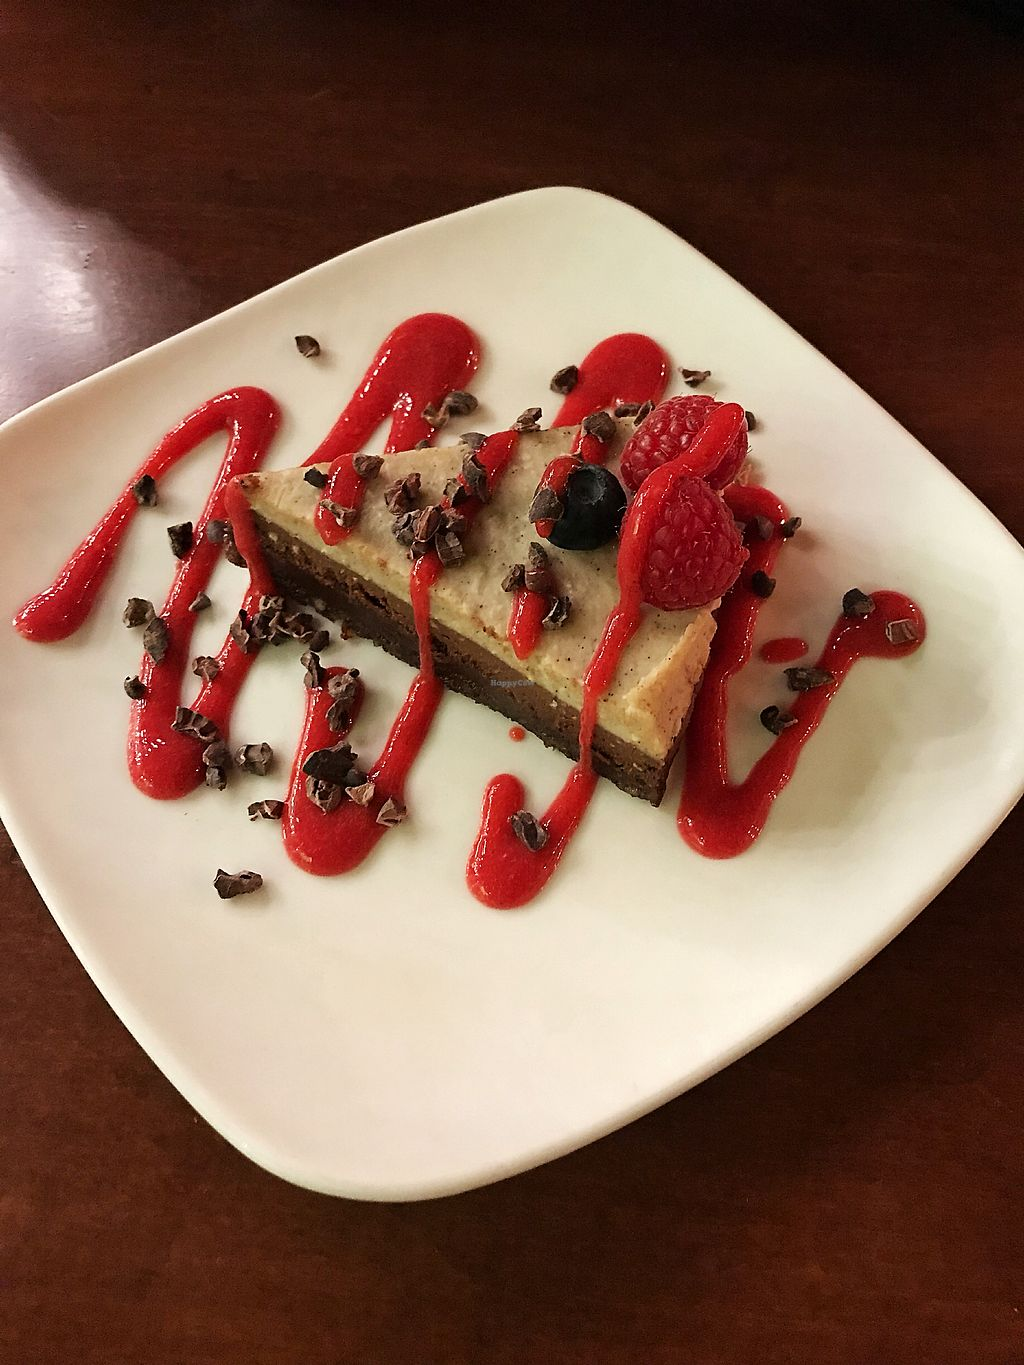 """Photo of Living Kitchen - South End  by <a href=""""/members/profile/Dimanta"""">Dimanta</a> <br/>Dolce cake was so so <br/> March 5, 2018  - <a href='/contact/abuse/image/22984/366951'>Report</a>"""